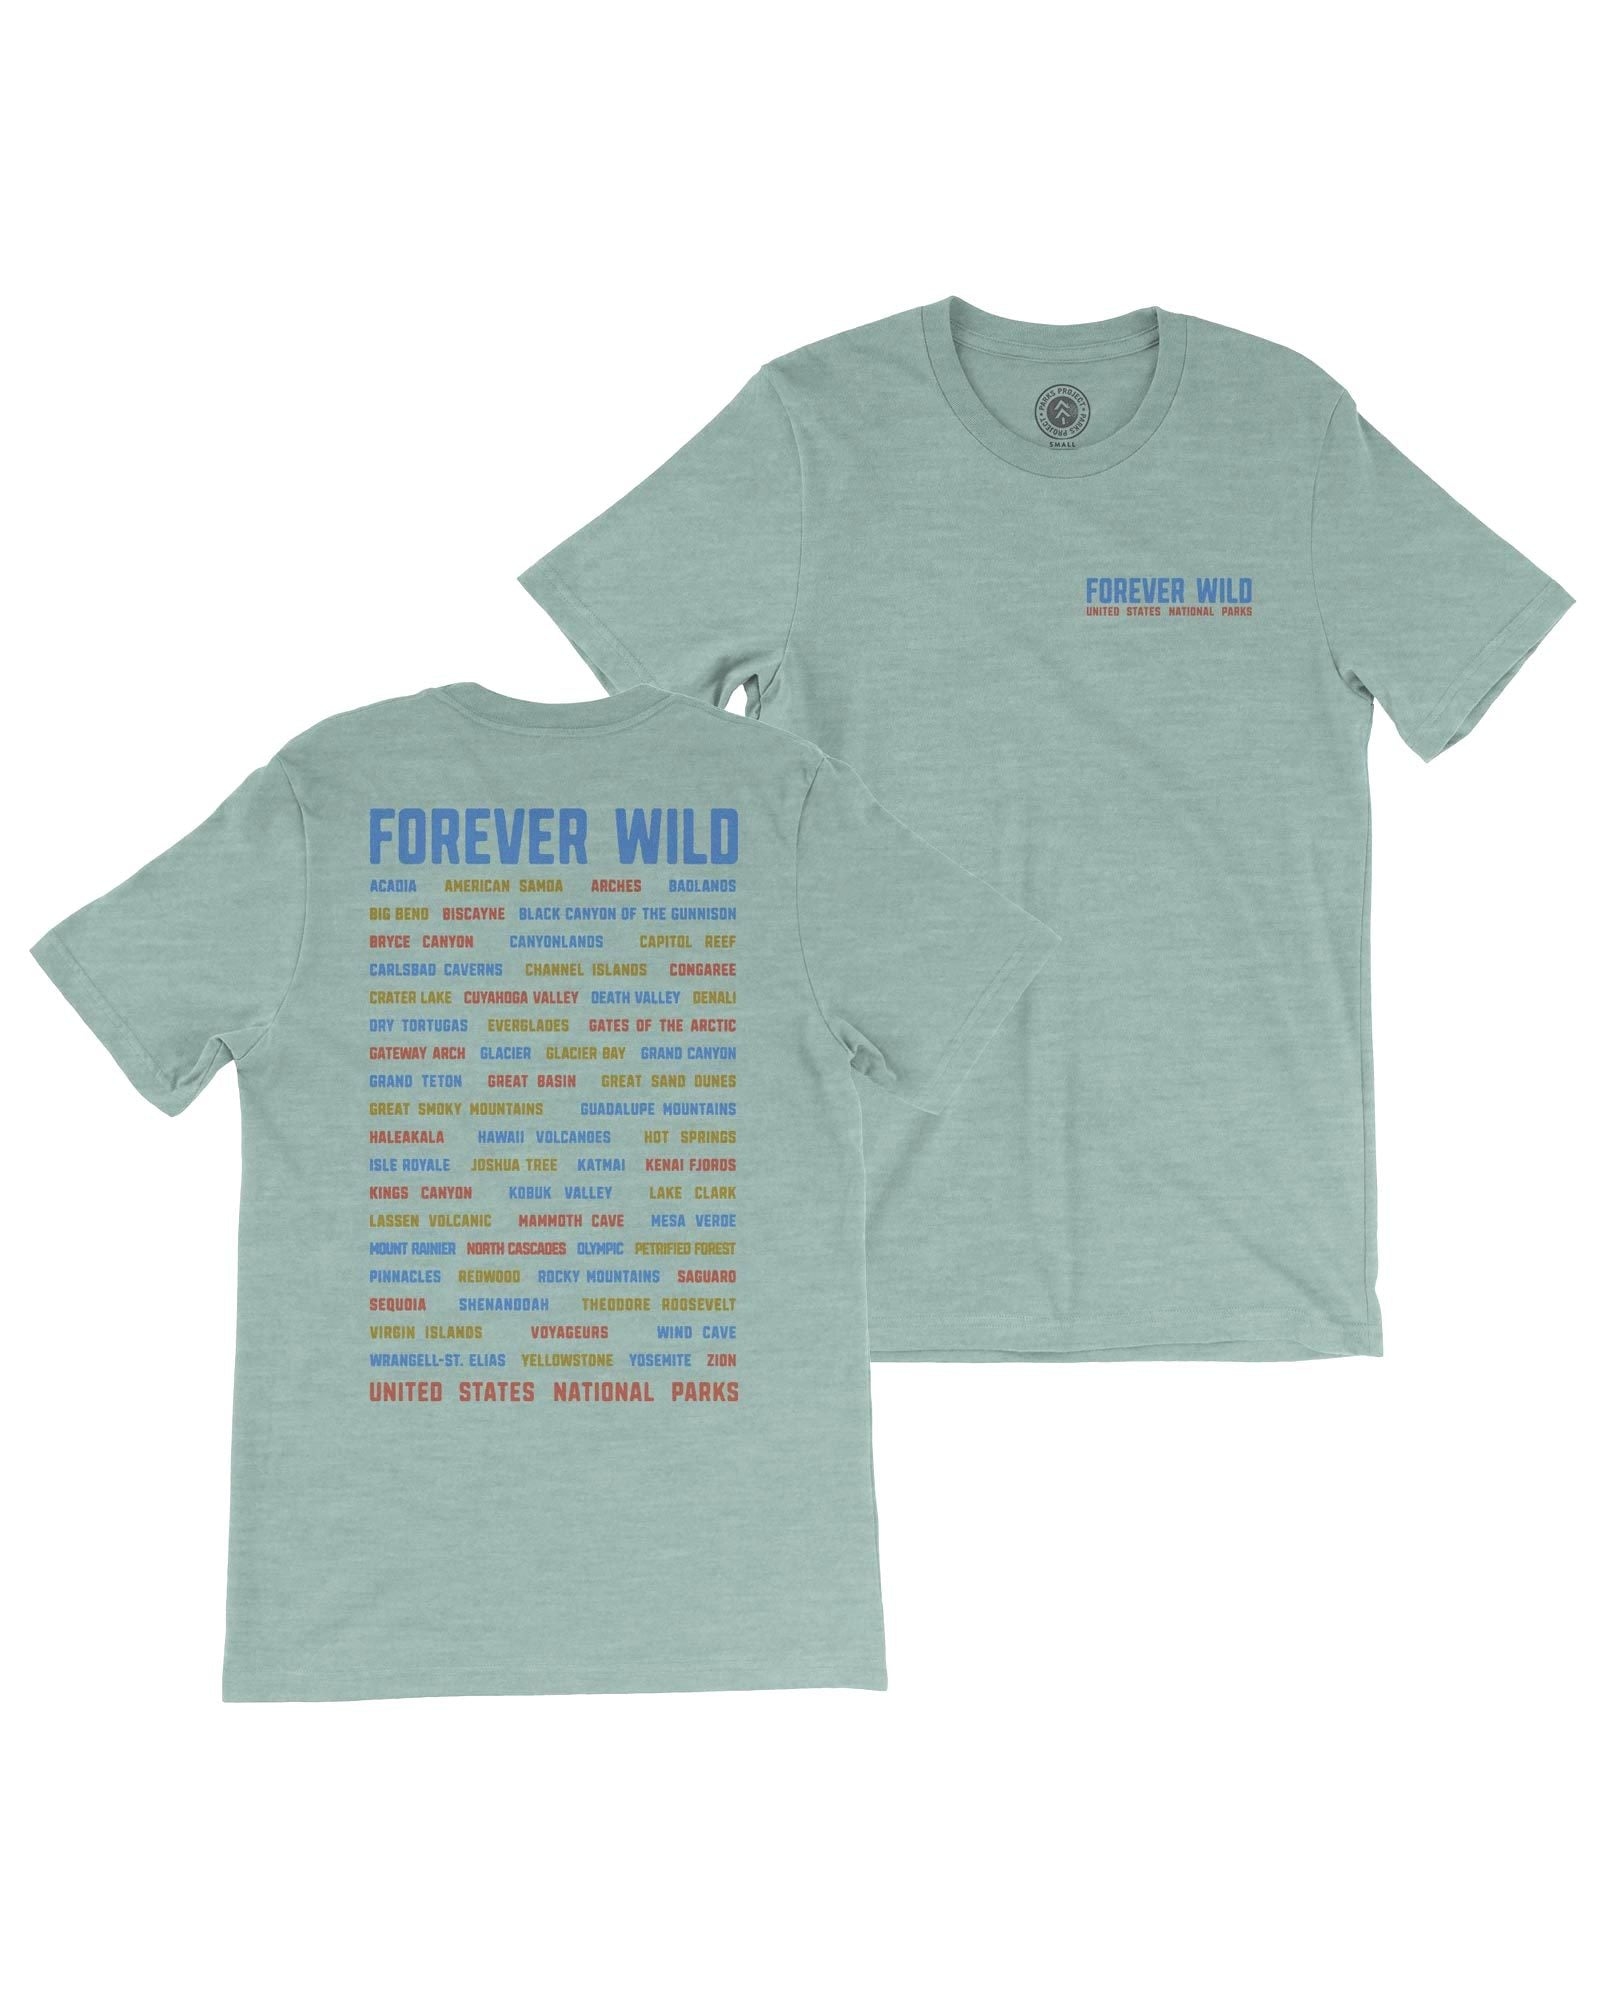 Forever Wild All Parks Tee | Parks Project | National Parks Shirts